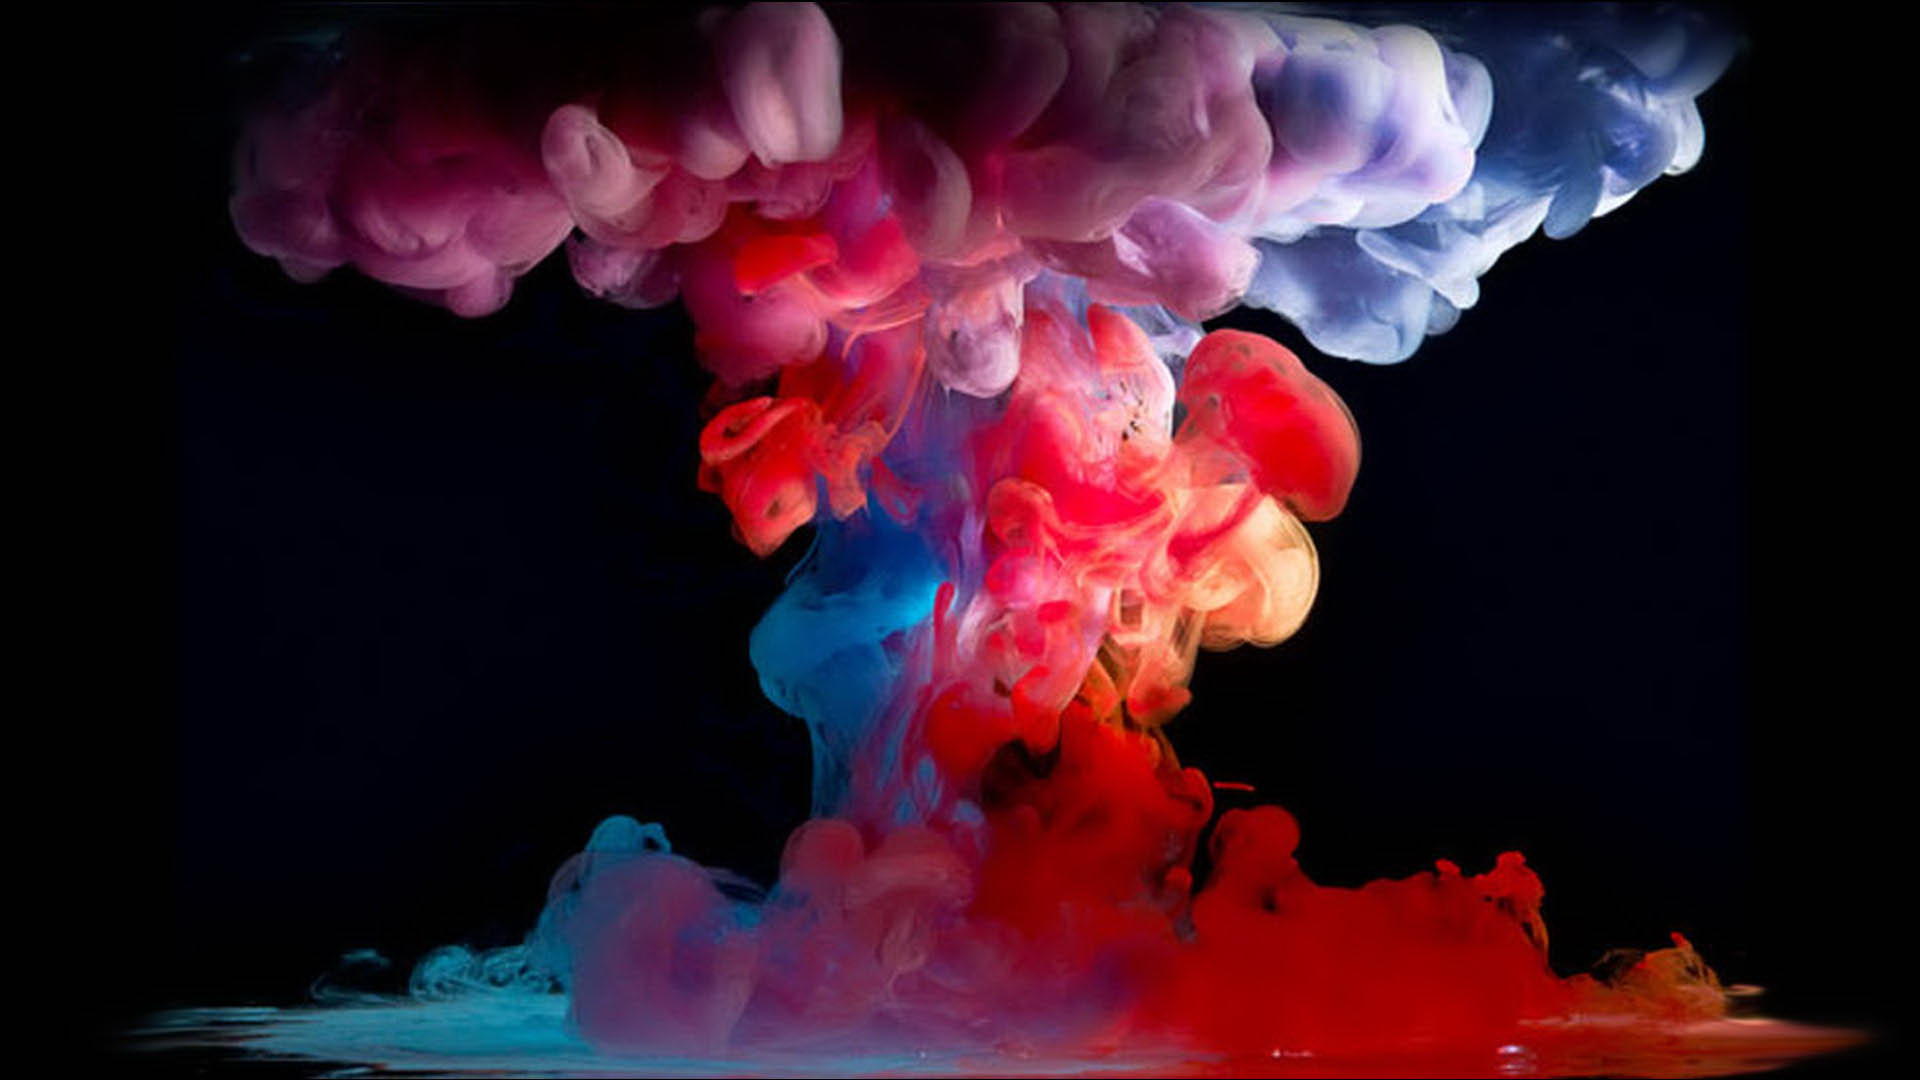 Amazing Wallpapers Hd Images Cool Artworks Effects: Smoke Backgrounds, Pictures, Images